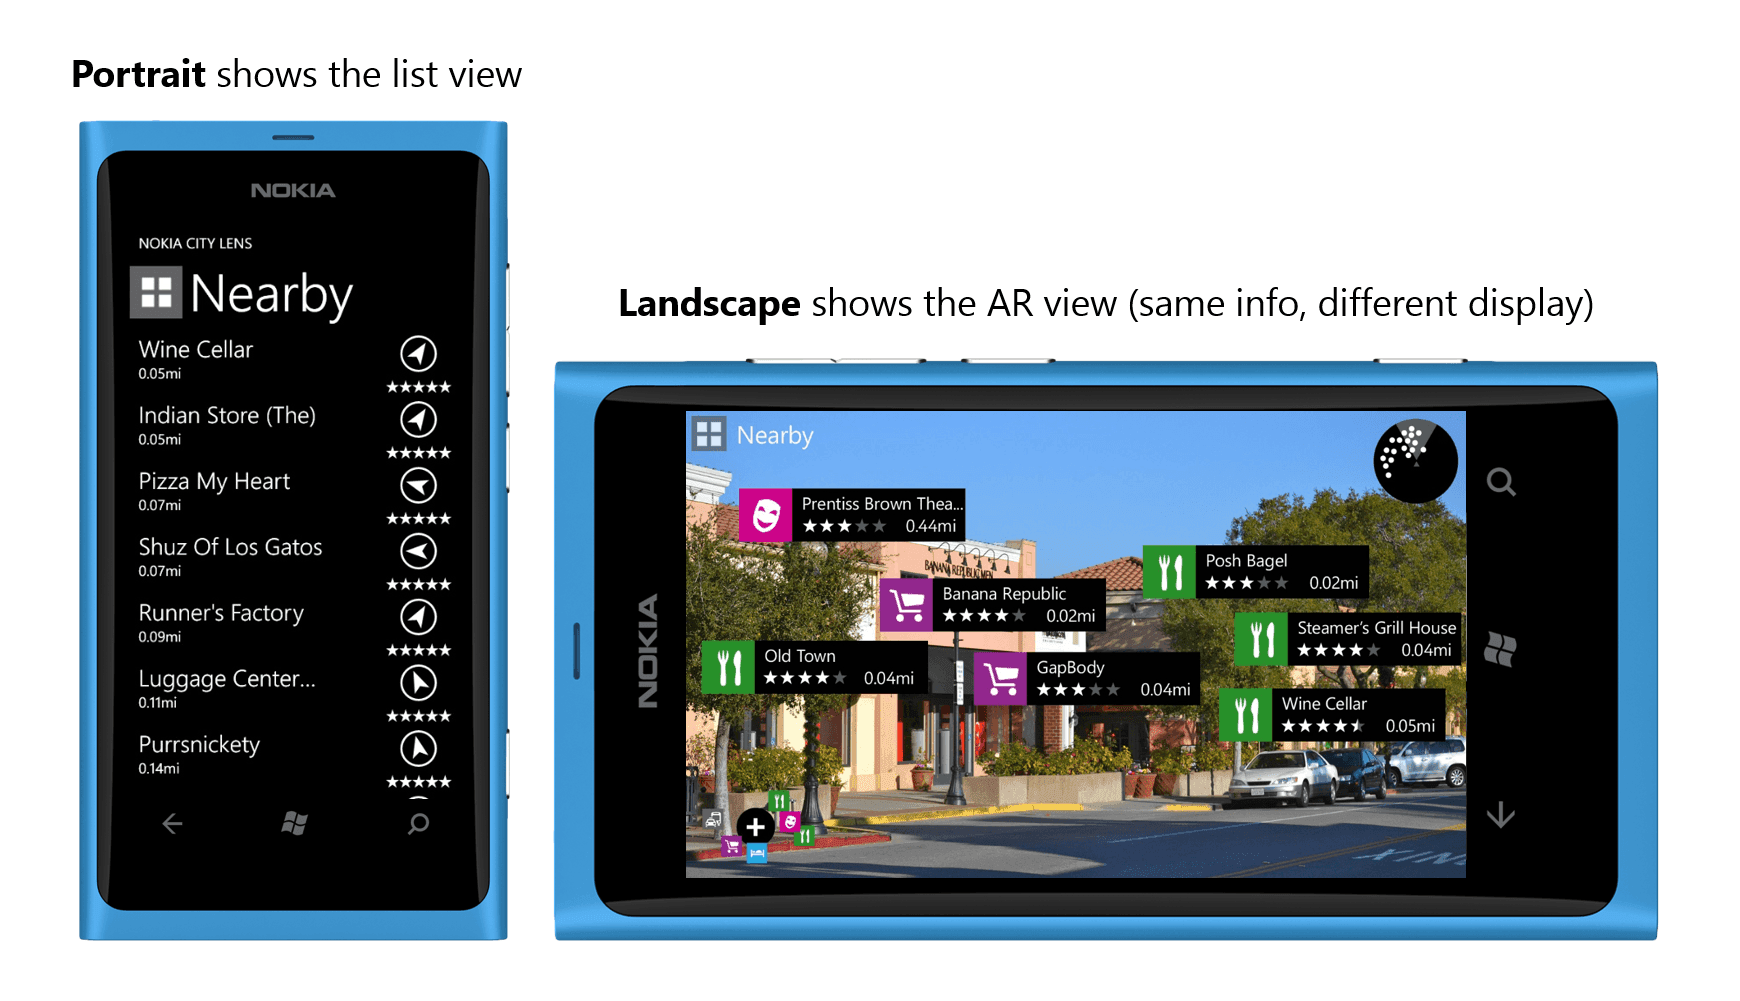 The Nokia City Lens app in both portrait and landscape orientation. Portrait shows a list view of nearby points of interest, while landscape shows the same list in AR over the phone's camera